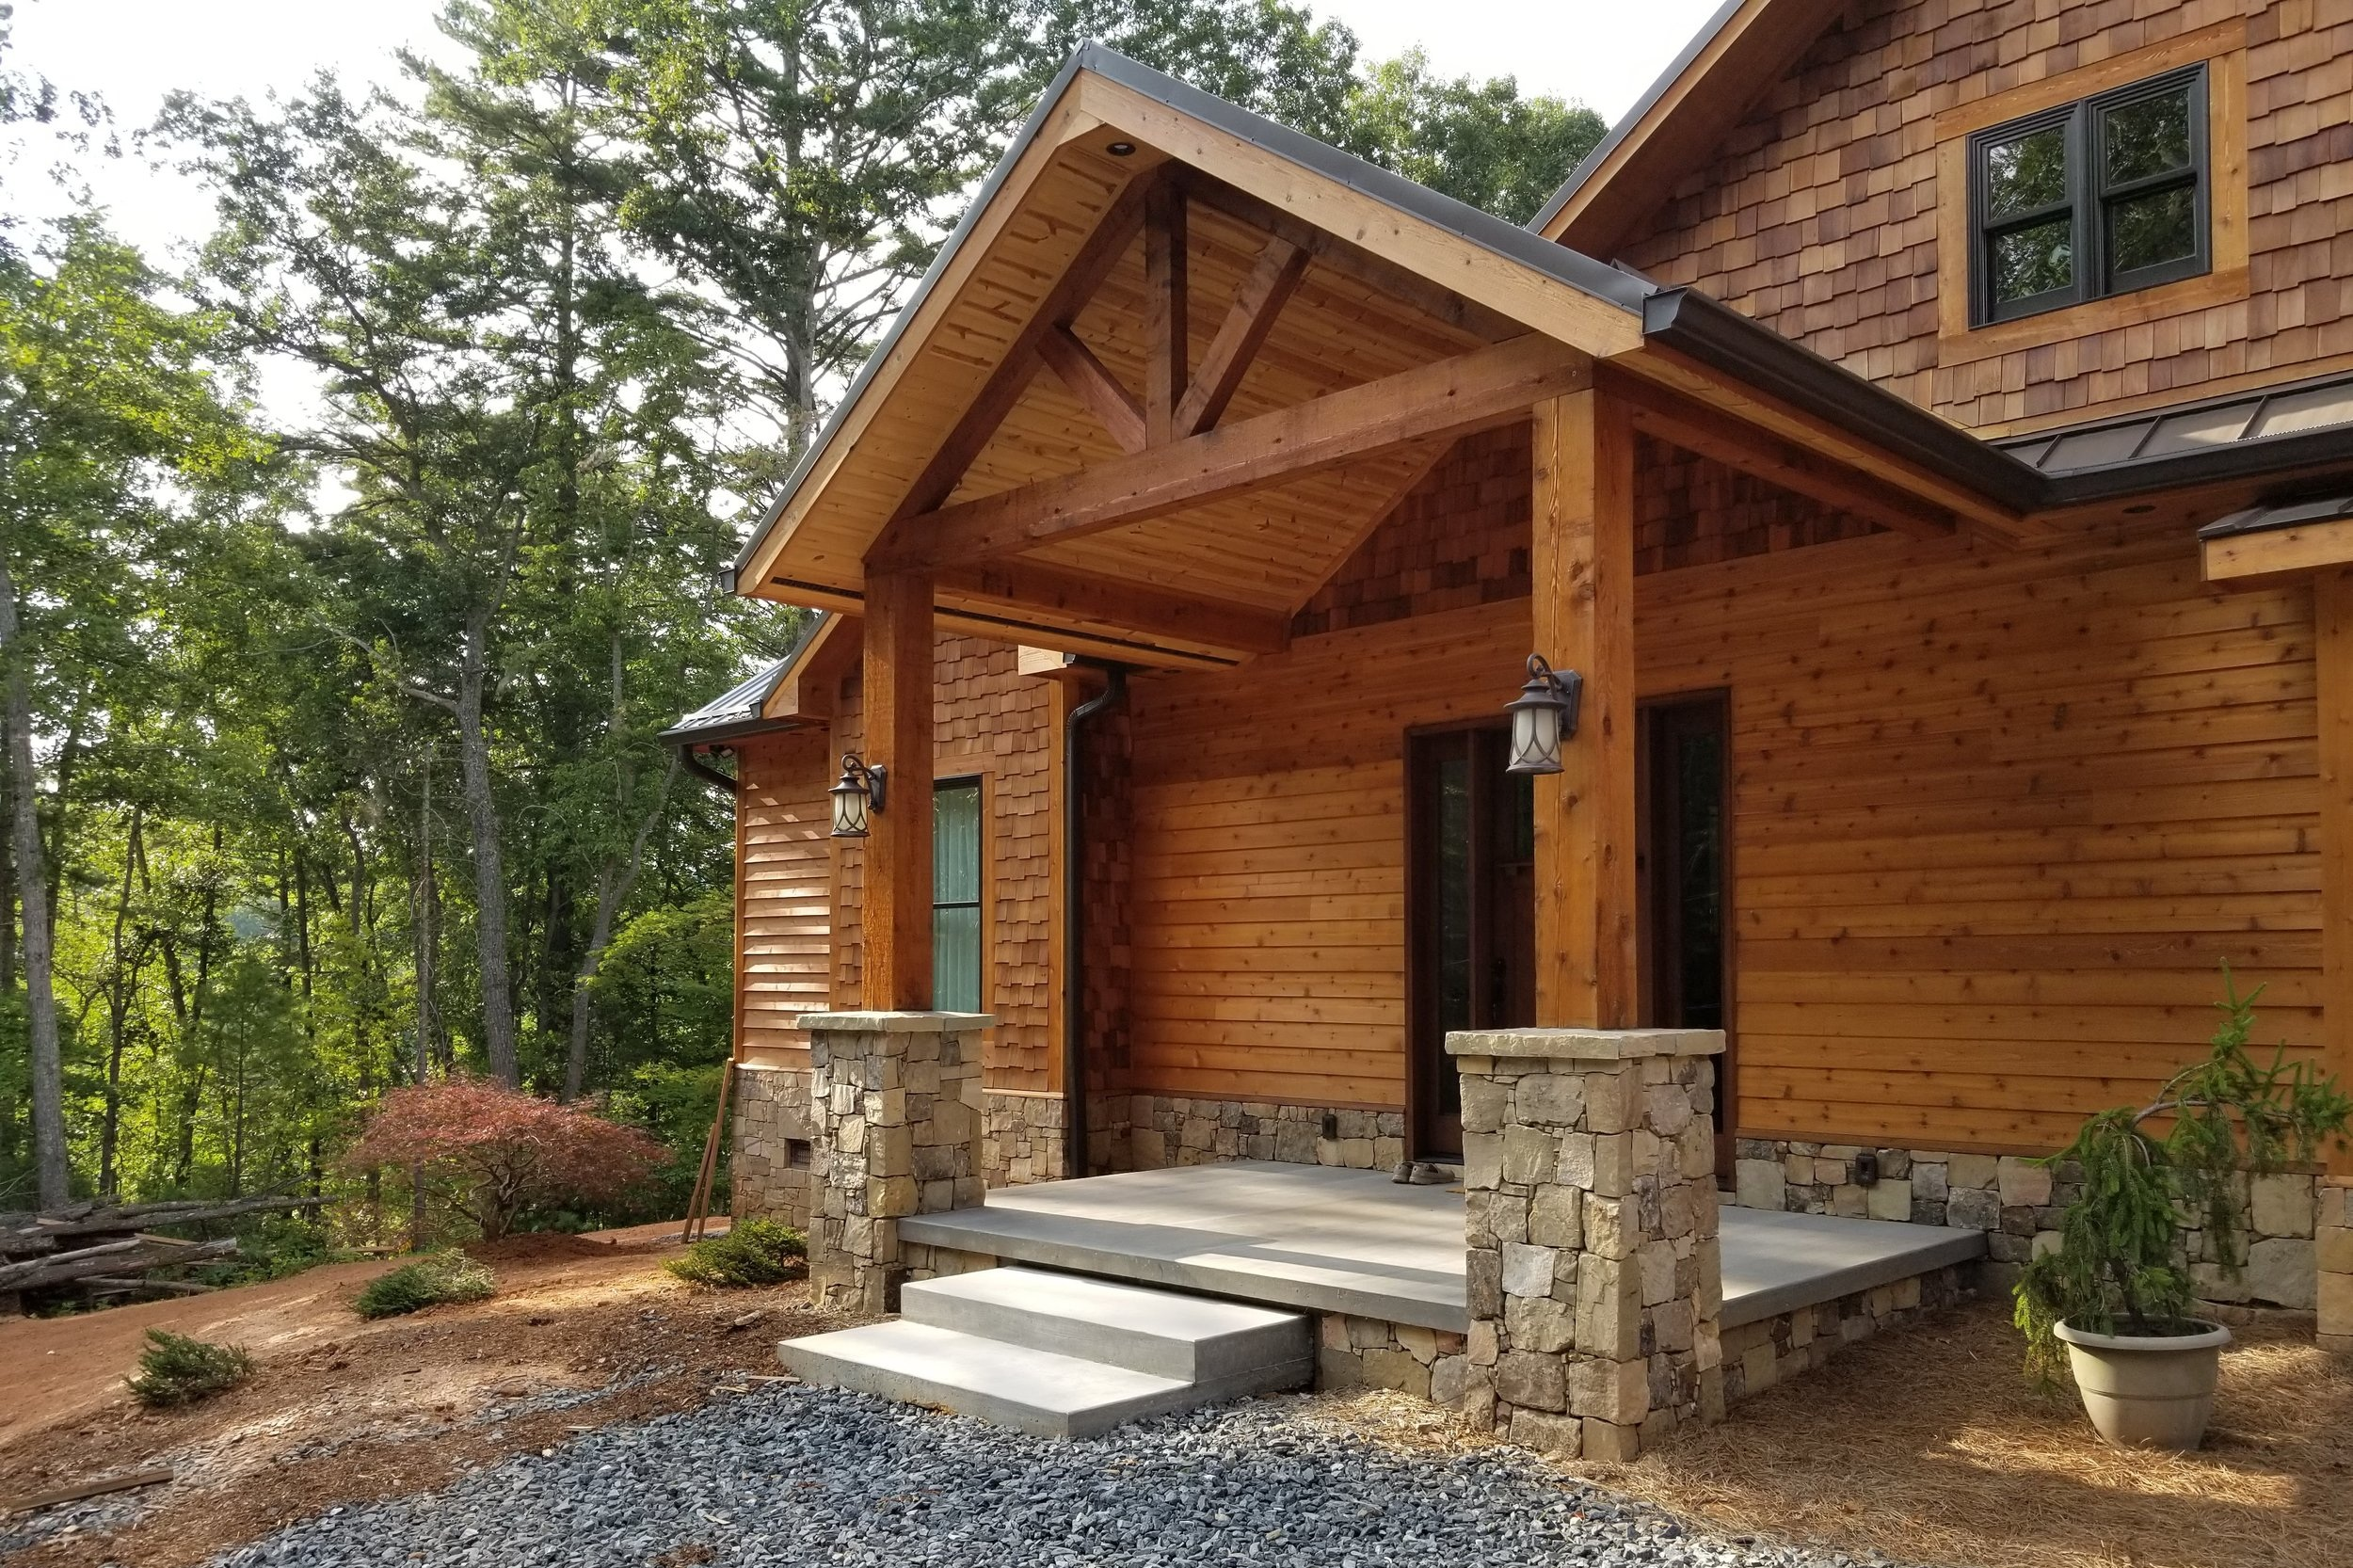 About - The home building industry presents us with many challenges: schedules, budgets, relationships, weather and personal fatigue. Statera strives to bring into balance these challenges by prioritizing Faith, Family & Community.